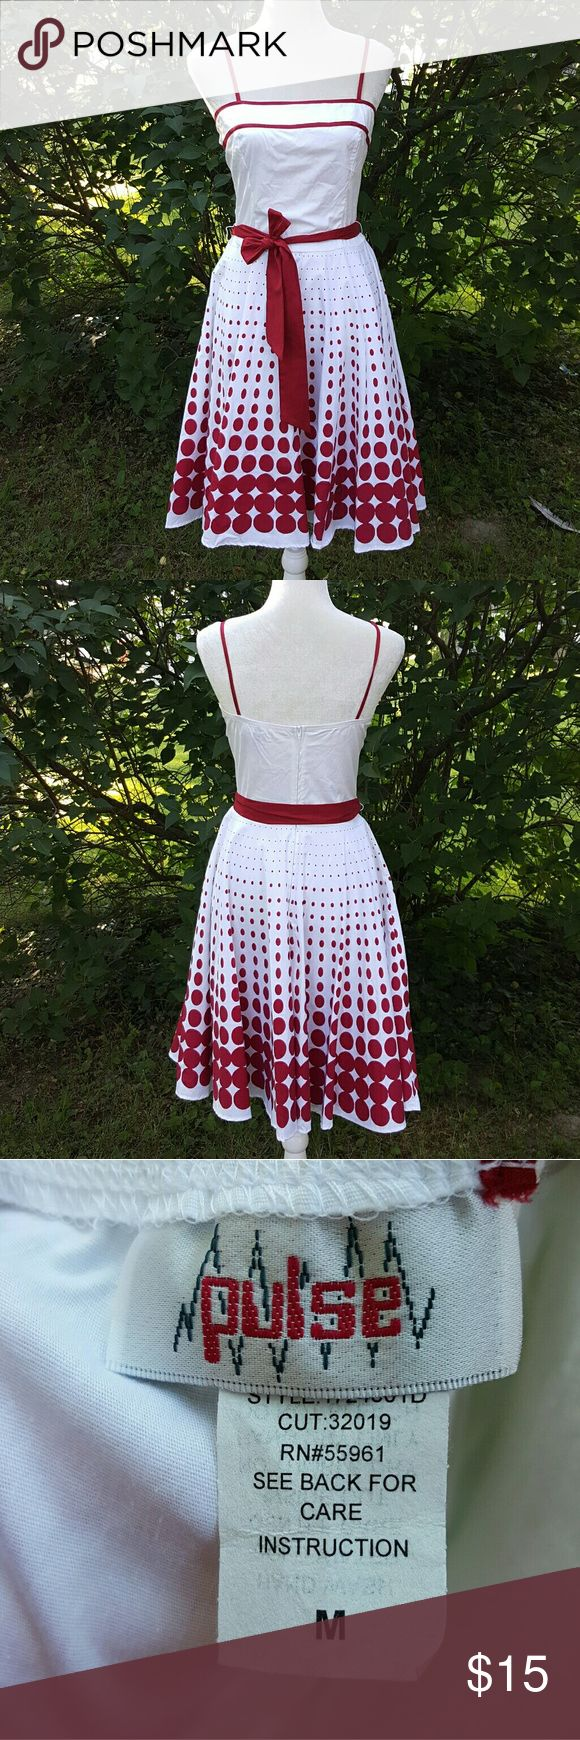 Pulse red polka dot dress Pulse red polka dot dress with tie and zip back. Excellent condition. Size medium Pulse Dresses